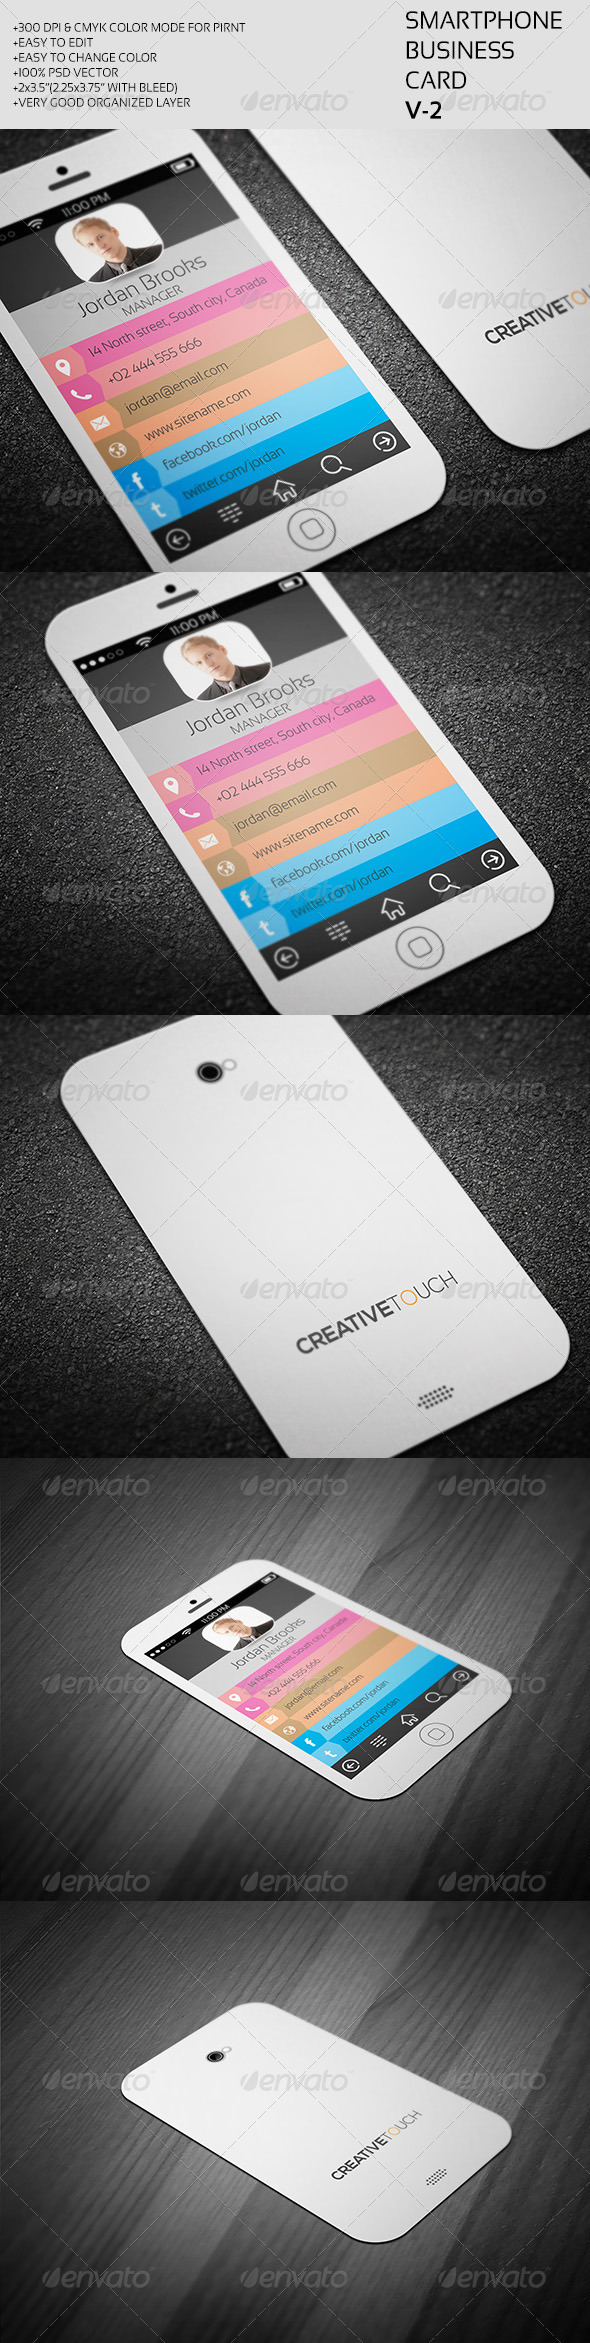 Smartphone Business Card PSD Print Templates| Print Ready | Buy and ...